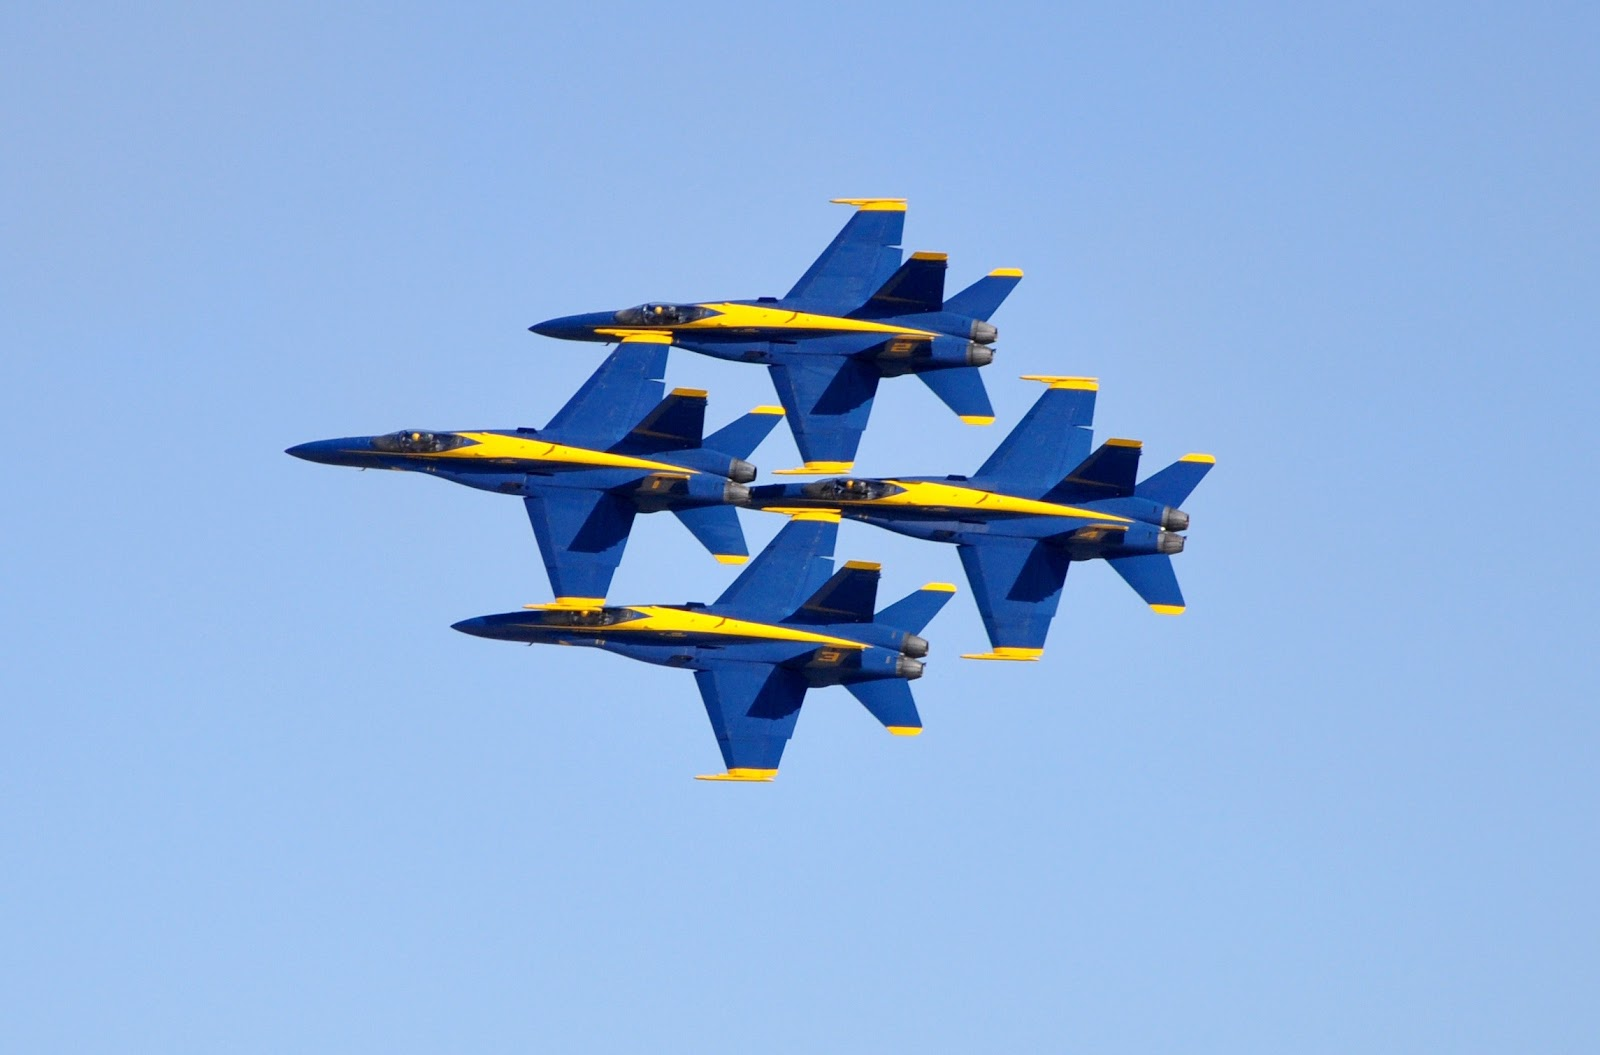 The Blue Angels fly in formation